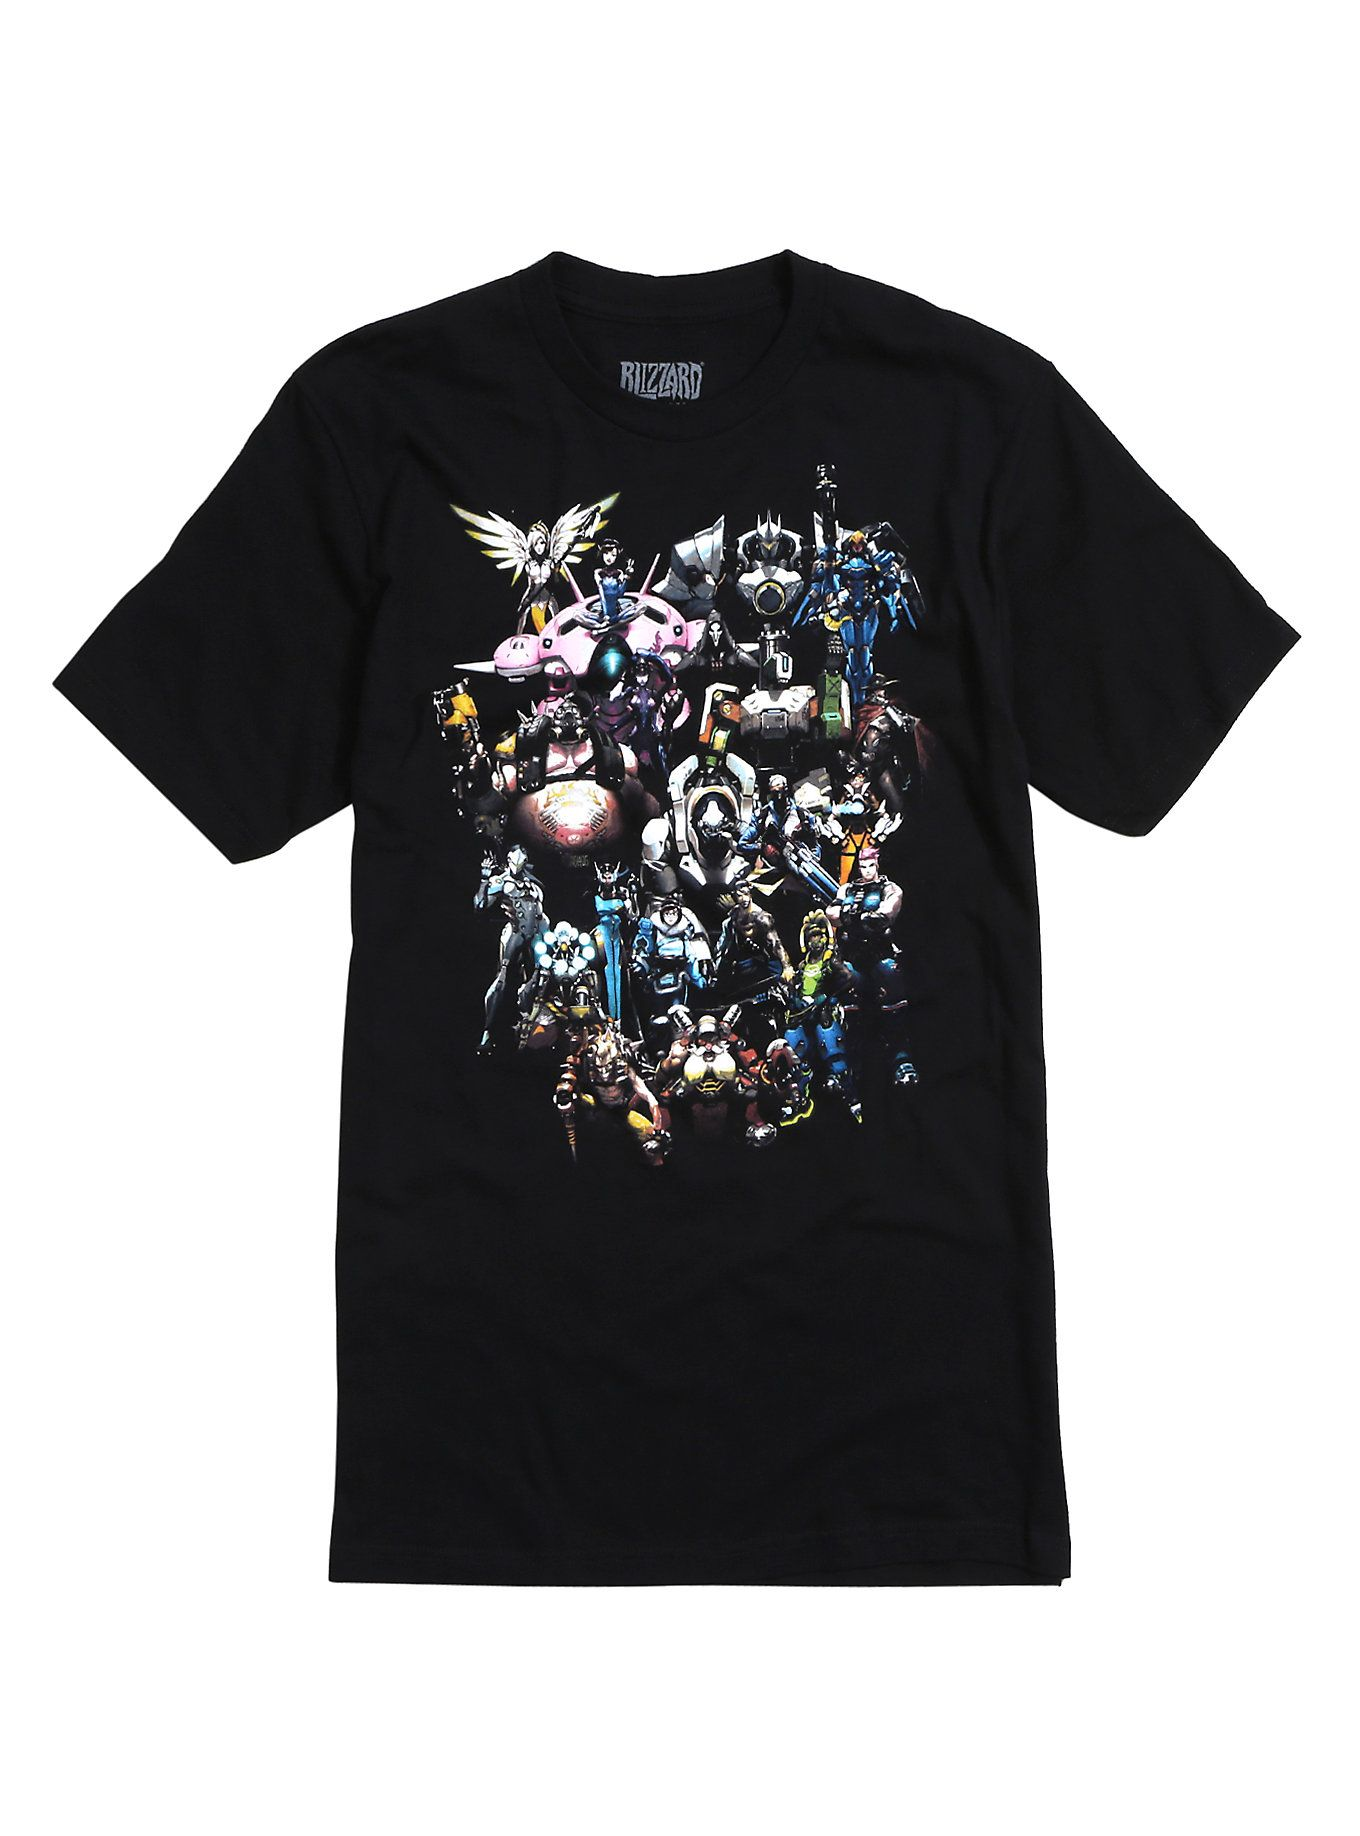 Black t shirt with print - Black T Shirt From Blizzard Entertainment S Highly Anticipated Overwatch Video Game With A Large Hero Characters Design On Front Logo Design Tag Print On